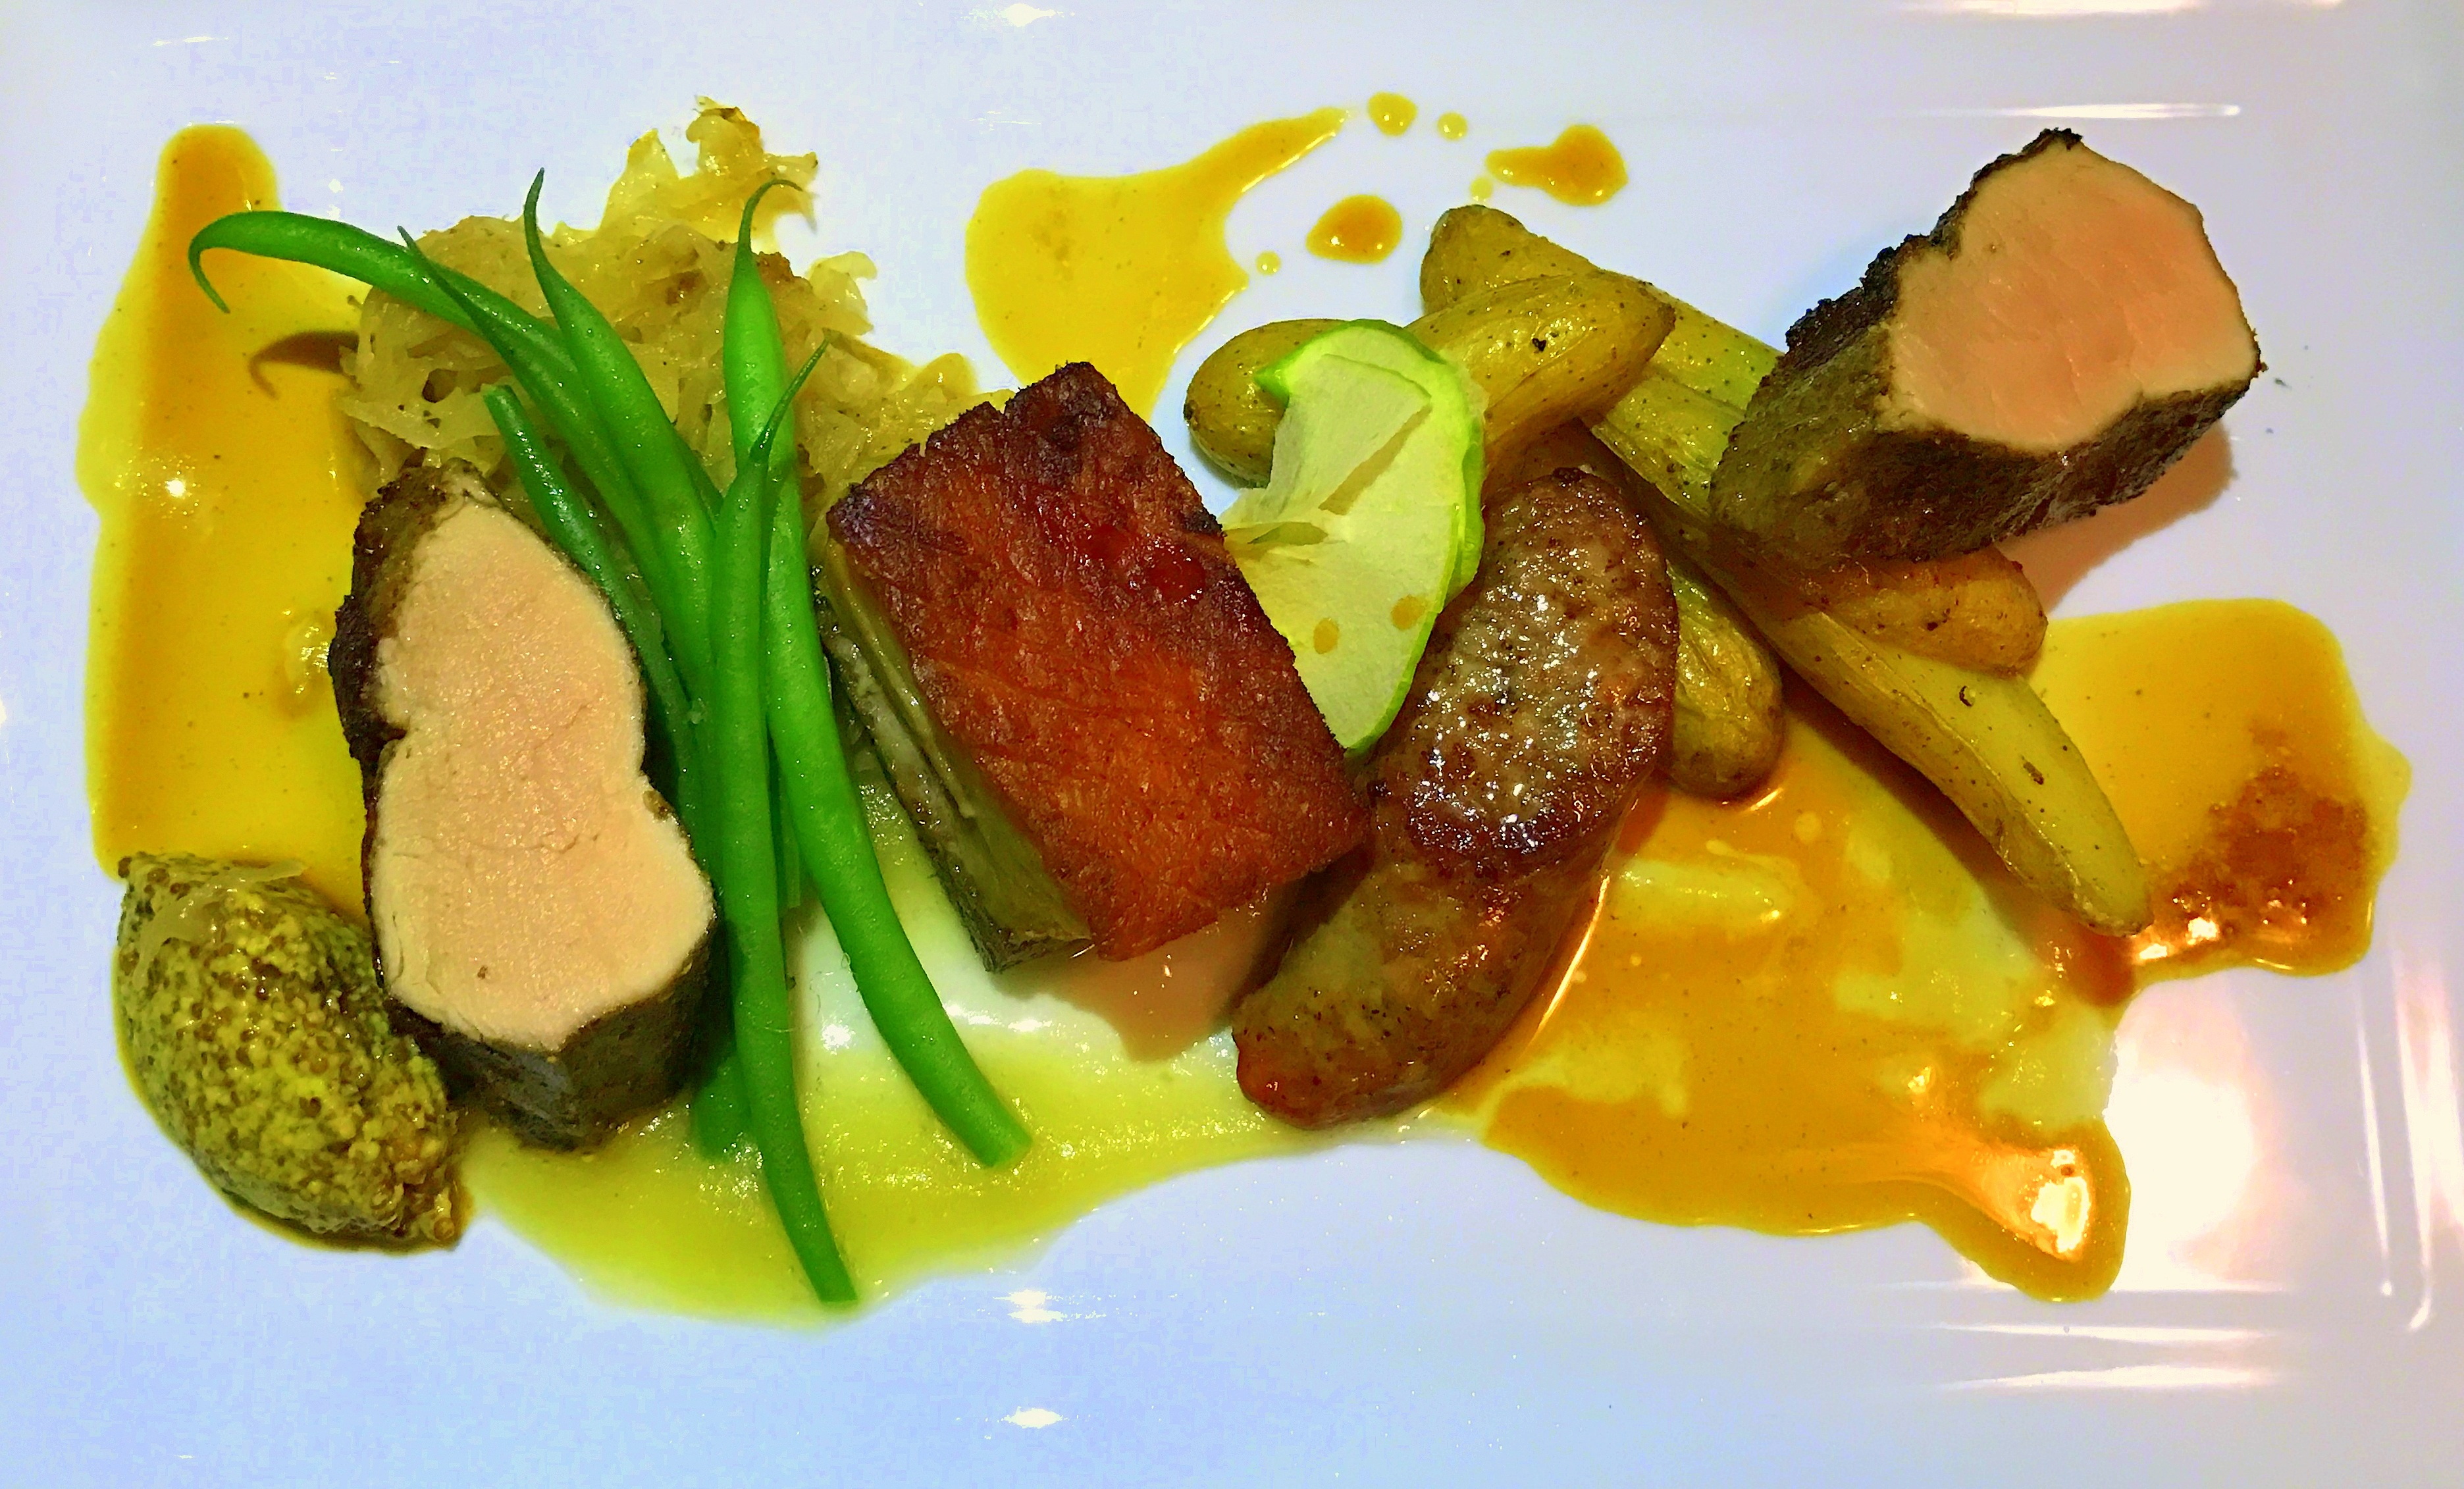 Pork belly confit & roasted spiced tenderloin of pork with house-made jagerwurst 2